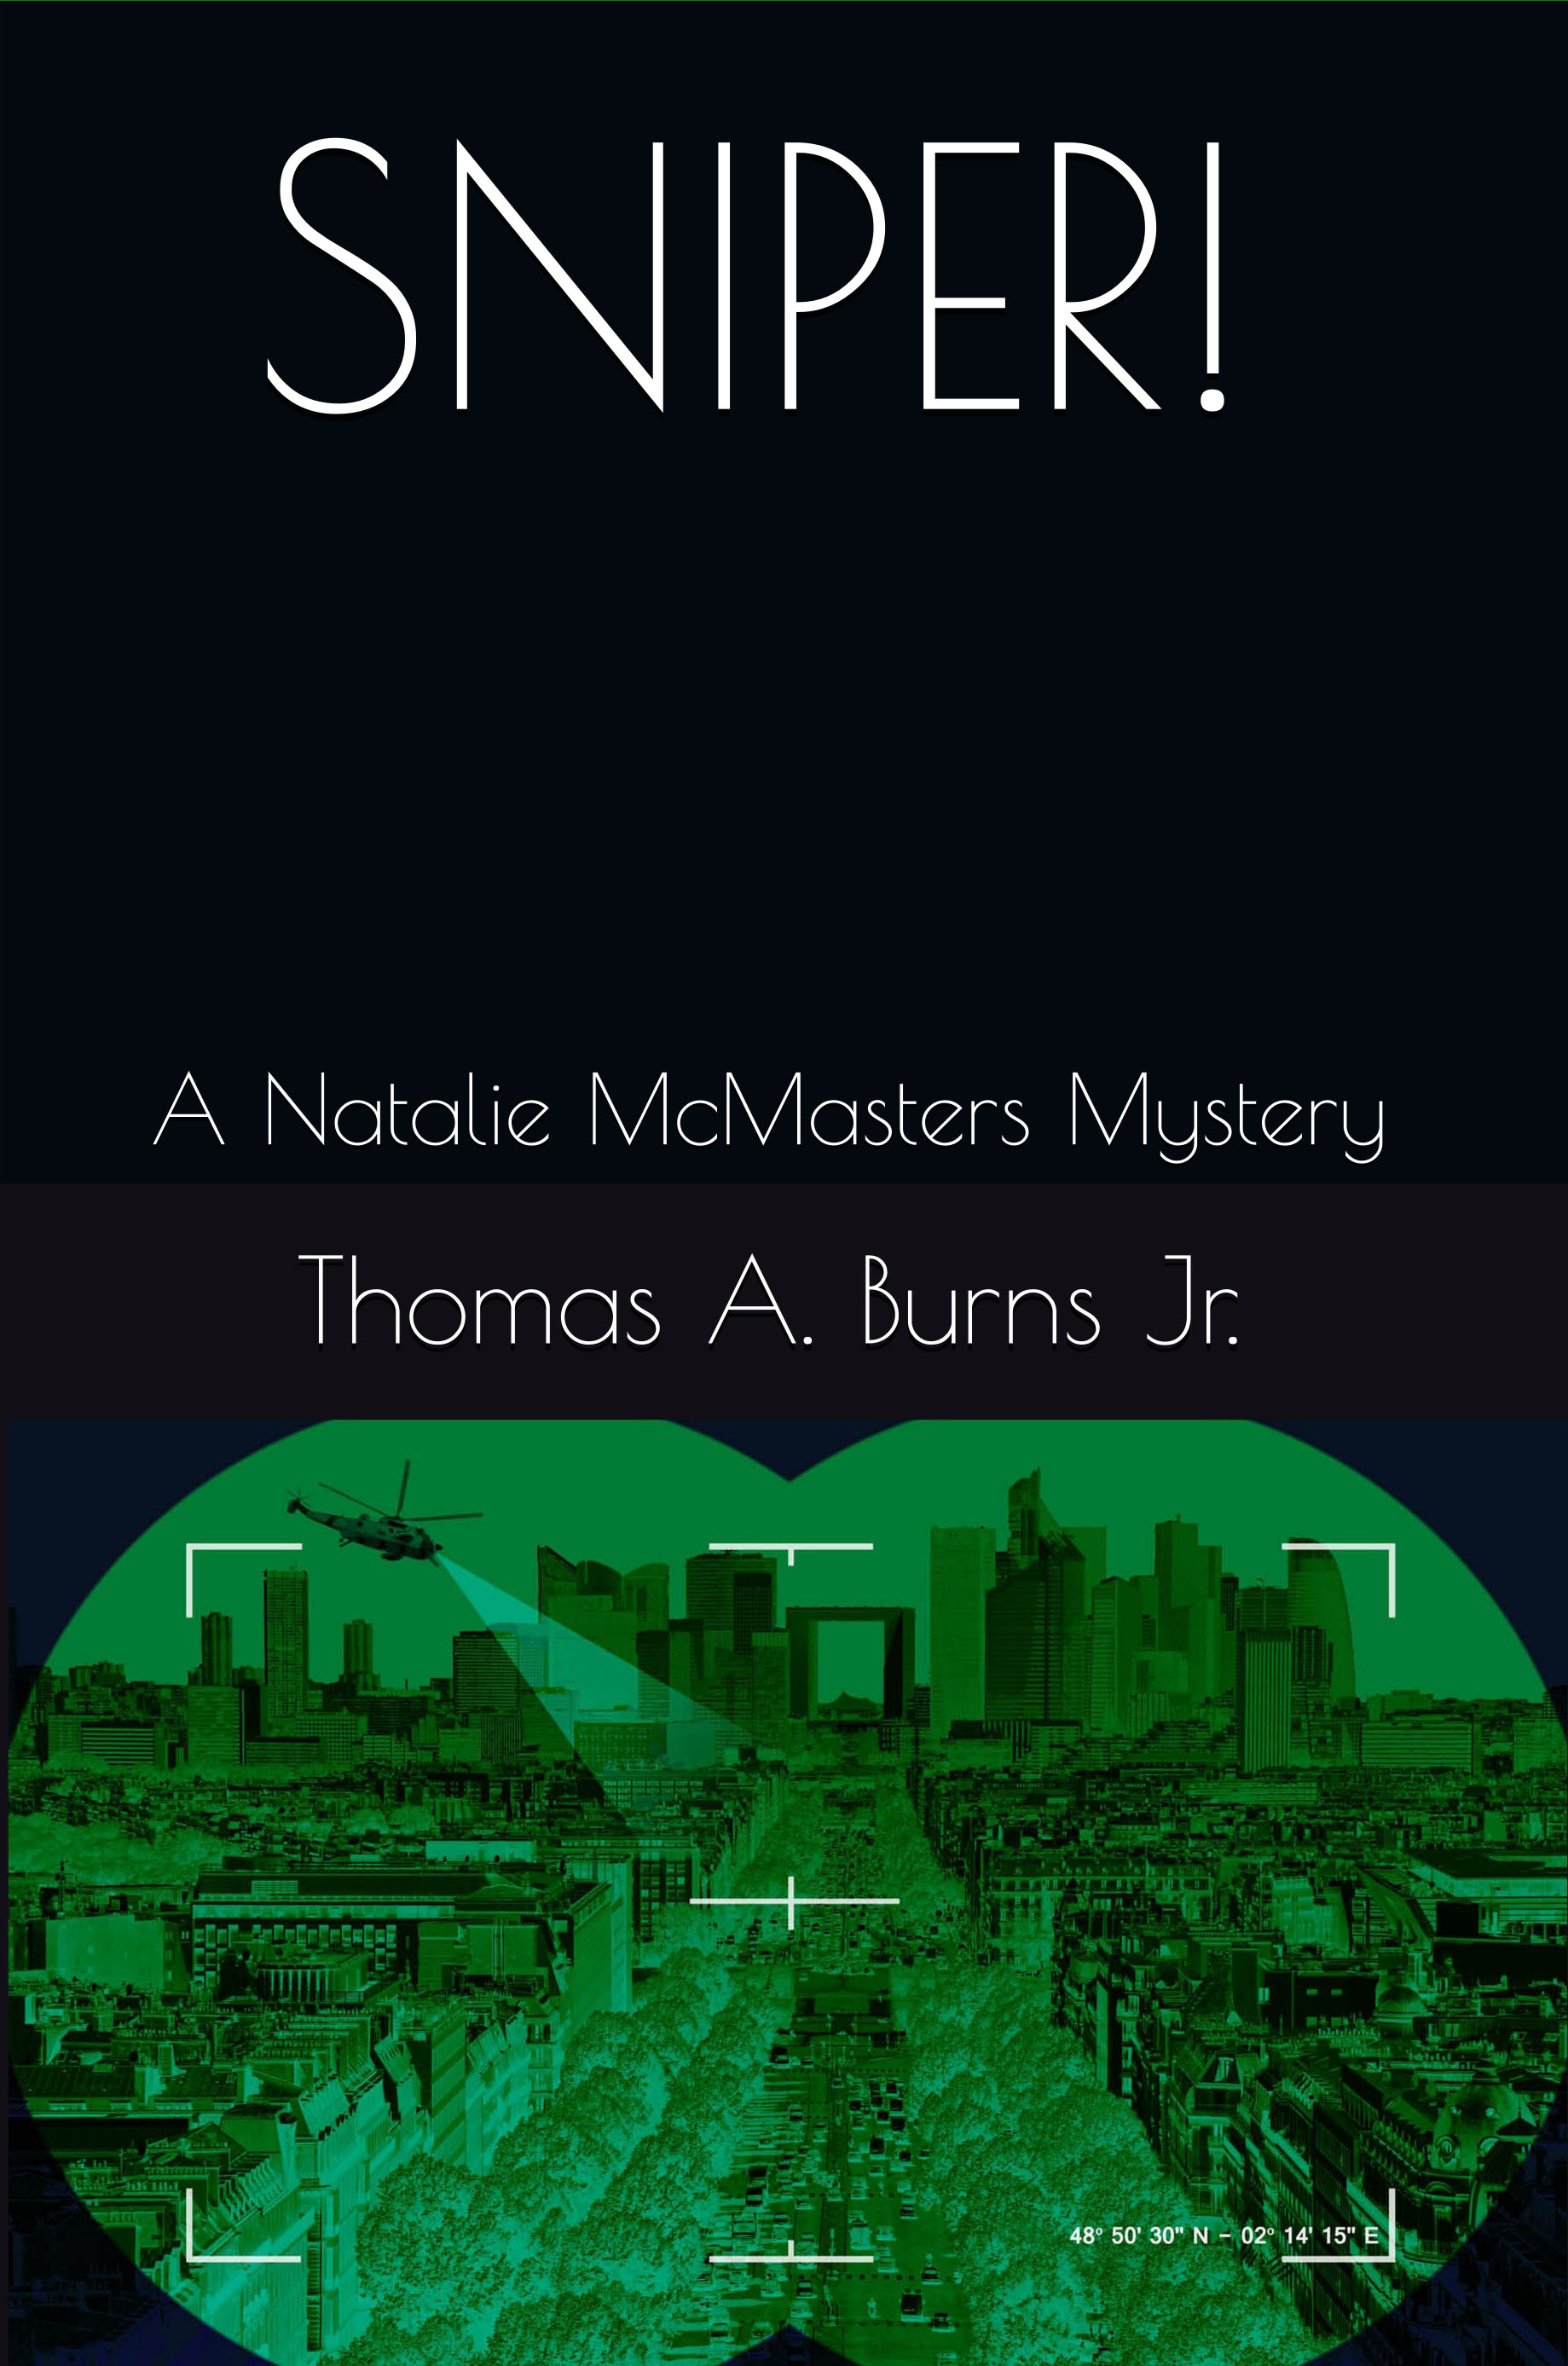 Sniper! - A Natalie McMasters Mystery by Thomas A. Burns, Jr.